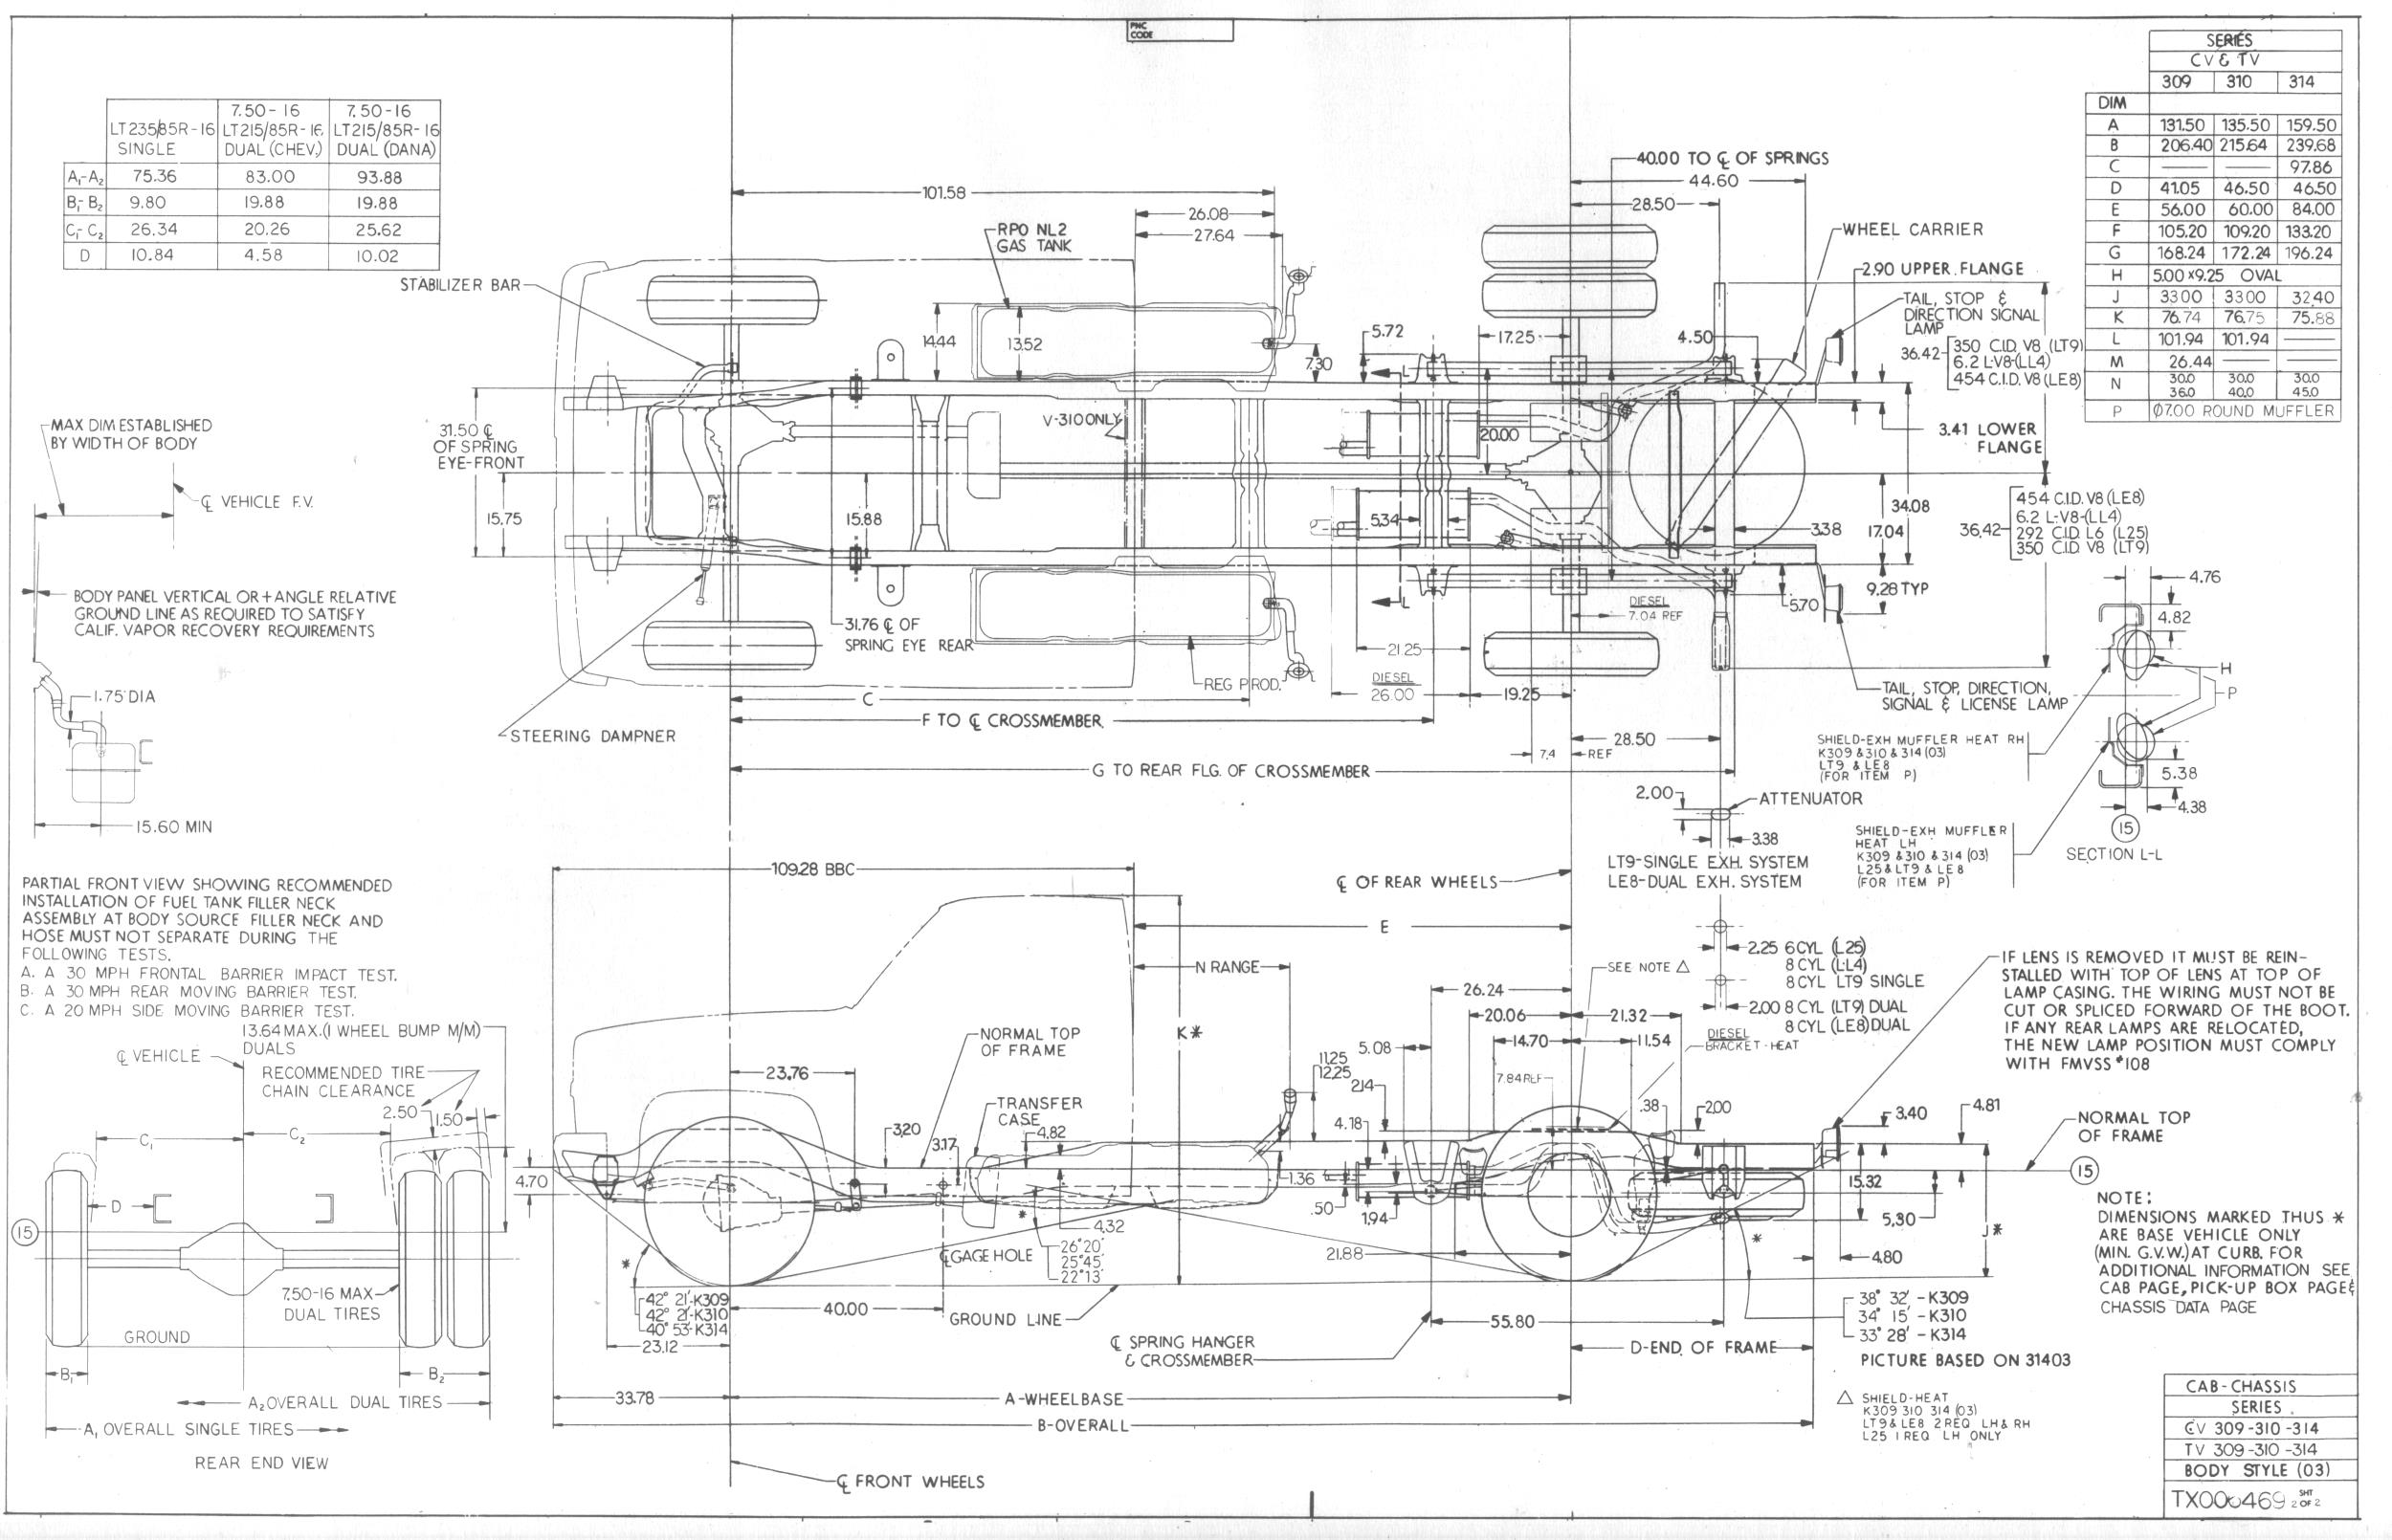 1997 Pathfinder Radio Wiring Diagram furthermore P 0900c1528004f5f1 additionally 54n3j Map Sensor 2000 Nissan Frontier 2 4l 4 Cyl Engine as well Nissan Frontier 4 0 Engine Diagram as well NISSAN Car Radio Wiring Connector. on for a 1995 nissan hardbody truck wiring diagram